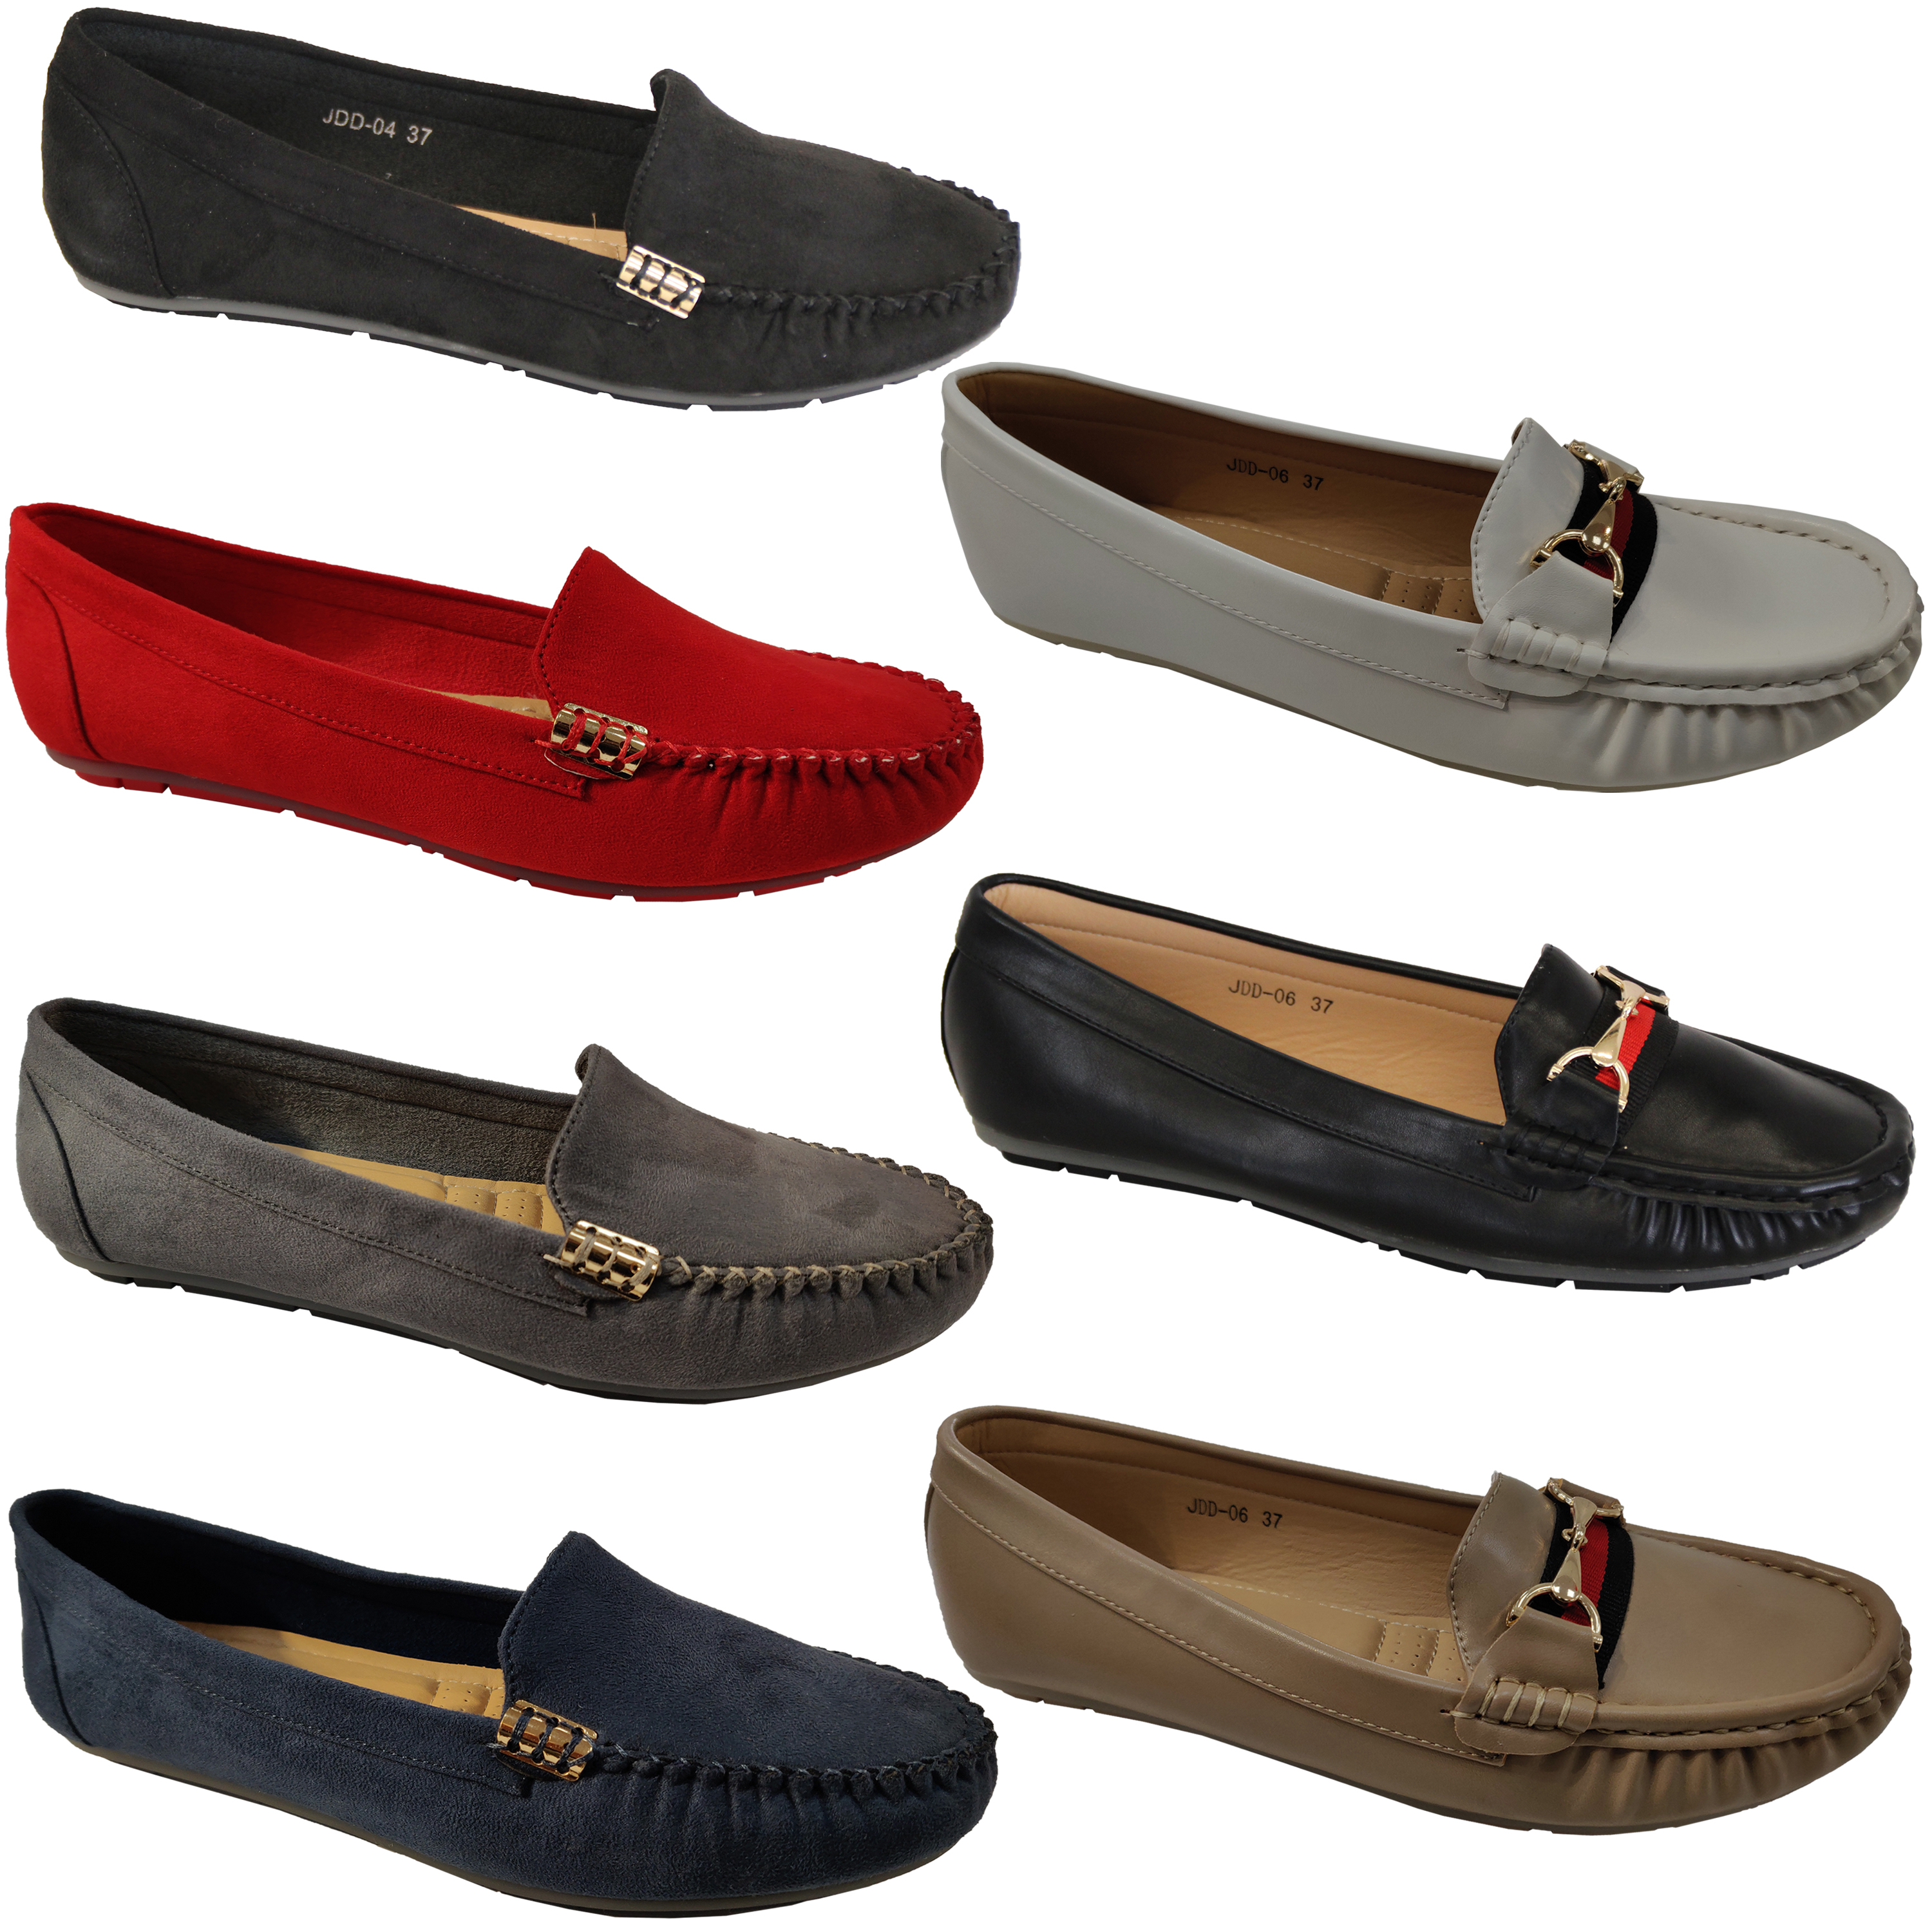 Ladies-Moccasins-Slip-On-Shoes-Ballerina-Womens-Suede-Look-Loafers-Flat-Work-New thumbnail 4